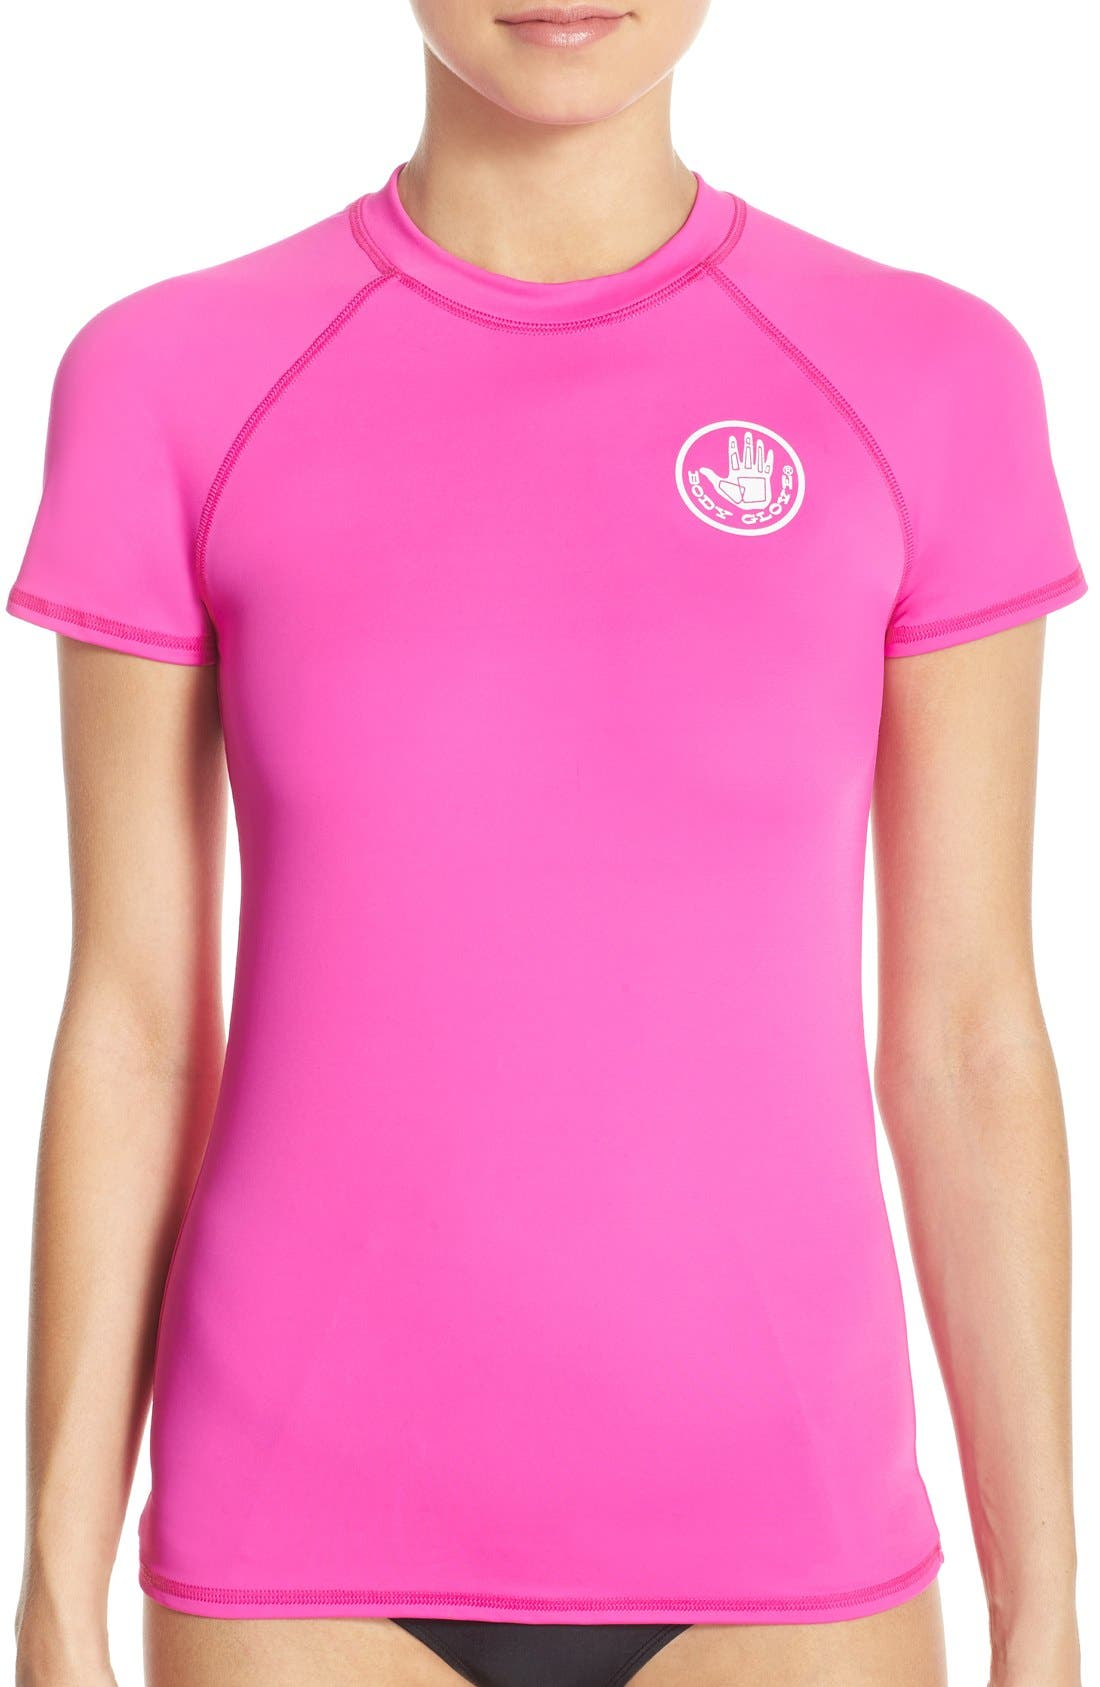 'Smoothies in Motion' Short Sleeve Rashguard,                             Main thumbnail 5, color,